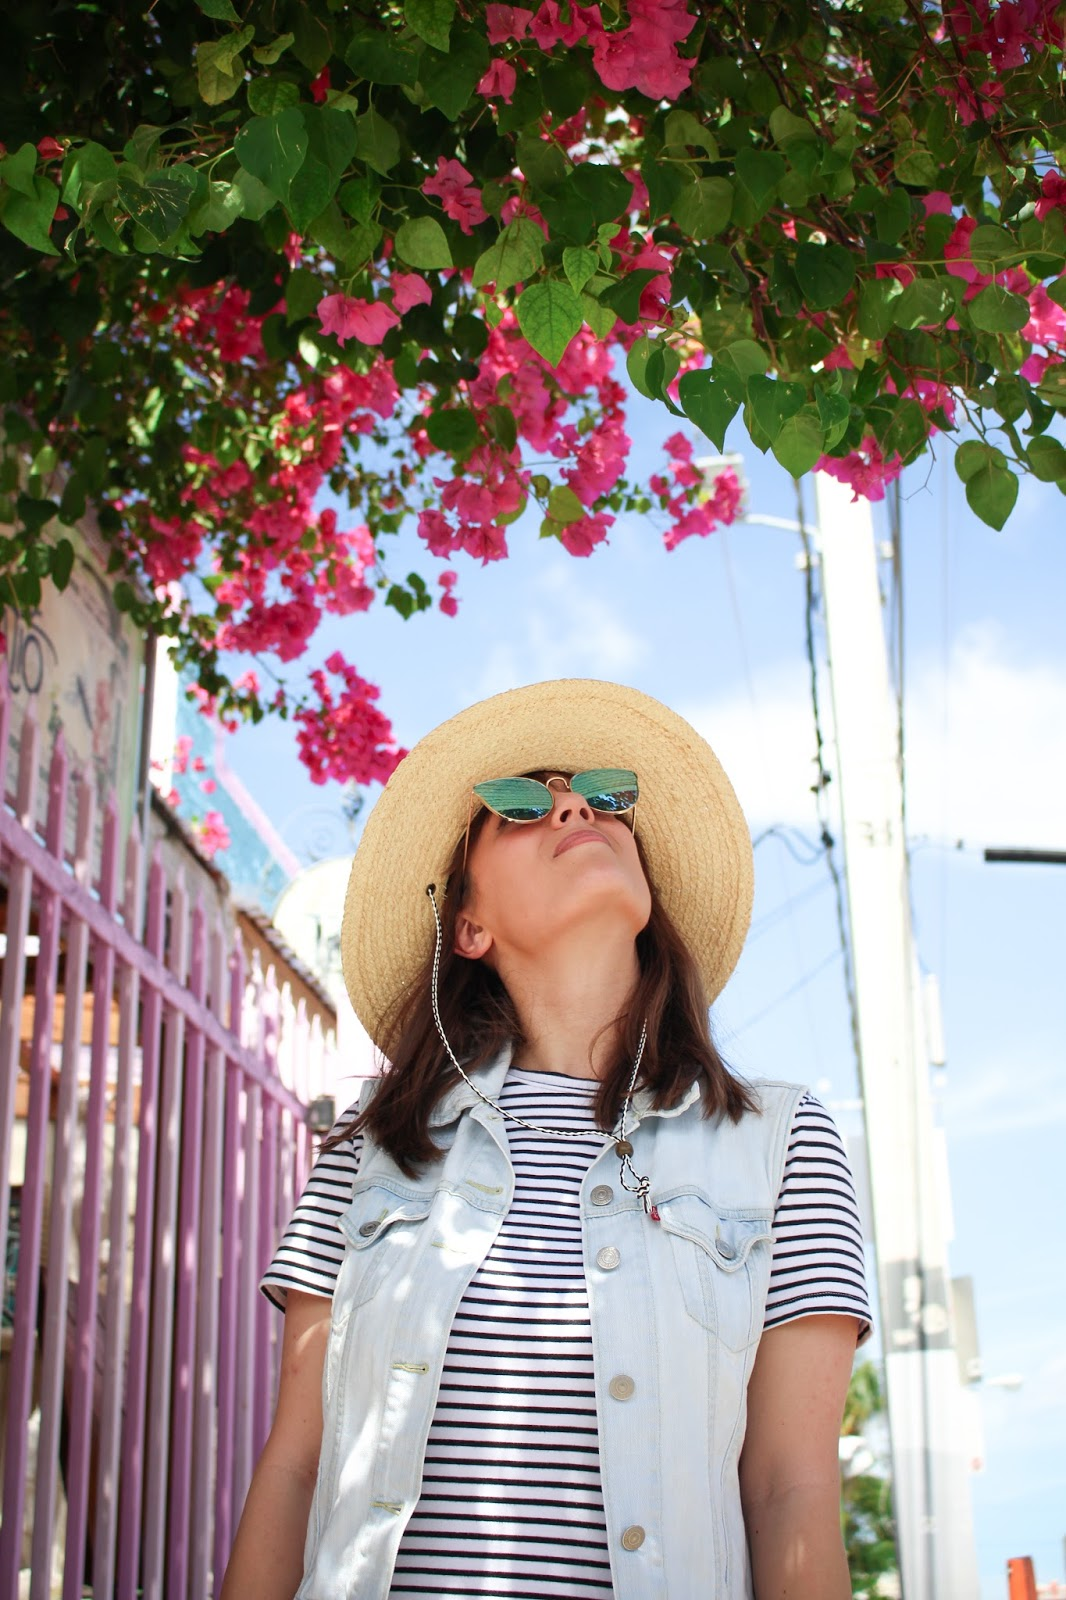 style, fashion, style blog, style blogger, minimalist blogger, minimalism, anniversary post, favorite outfits, summer outfits, capsule wardrobe, capsule outfit ideas